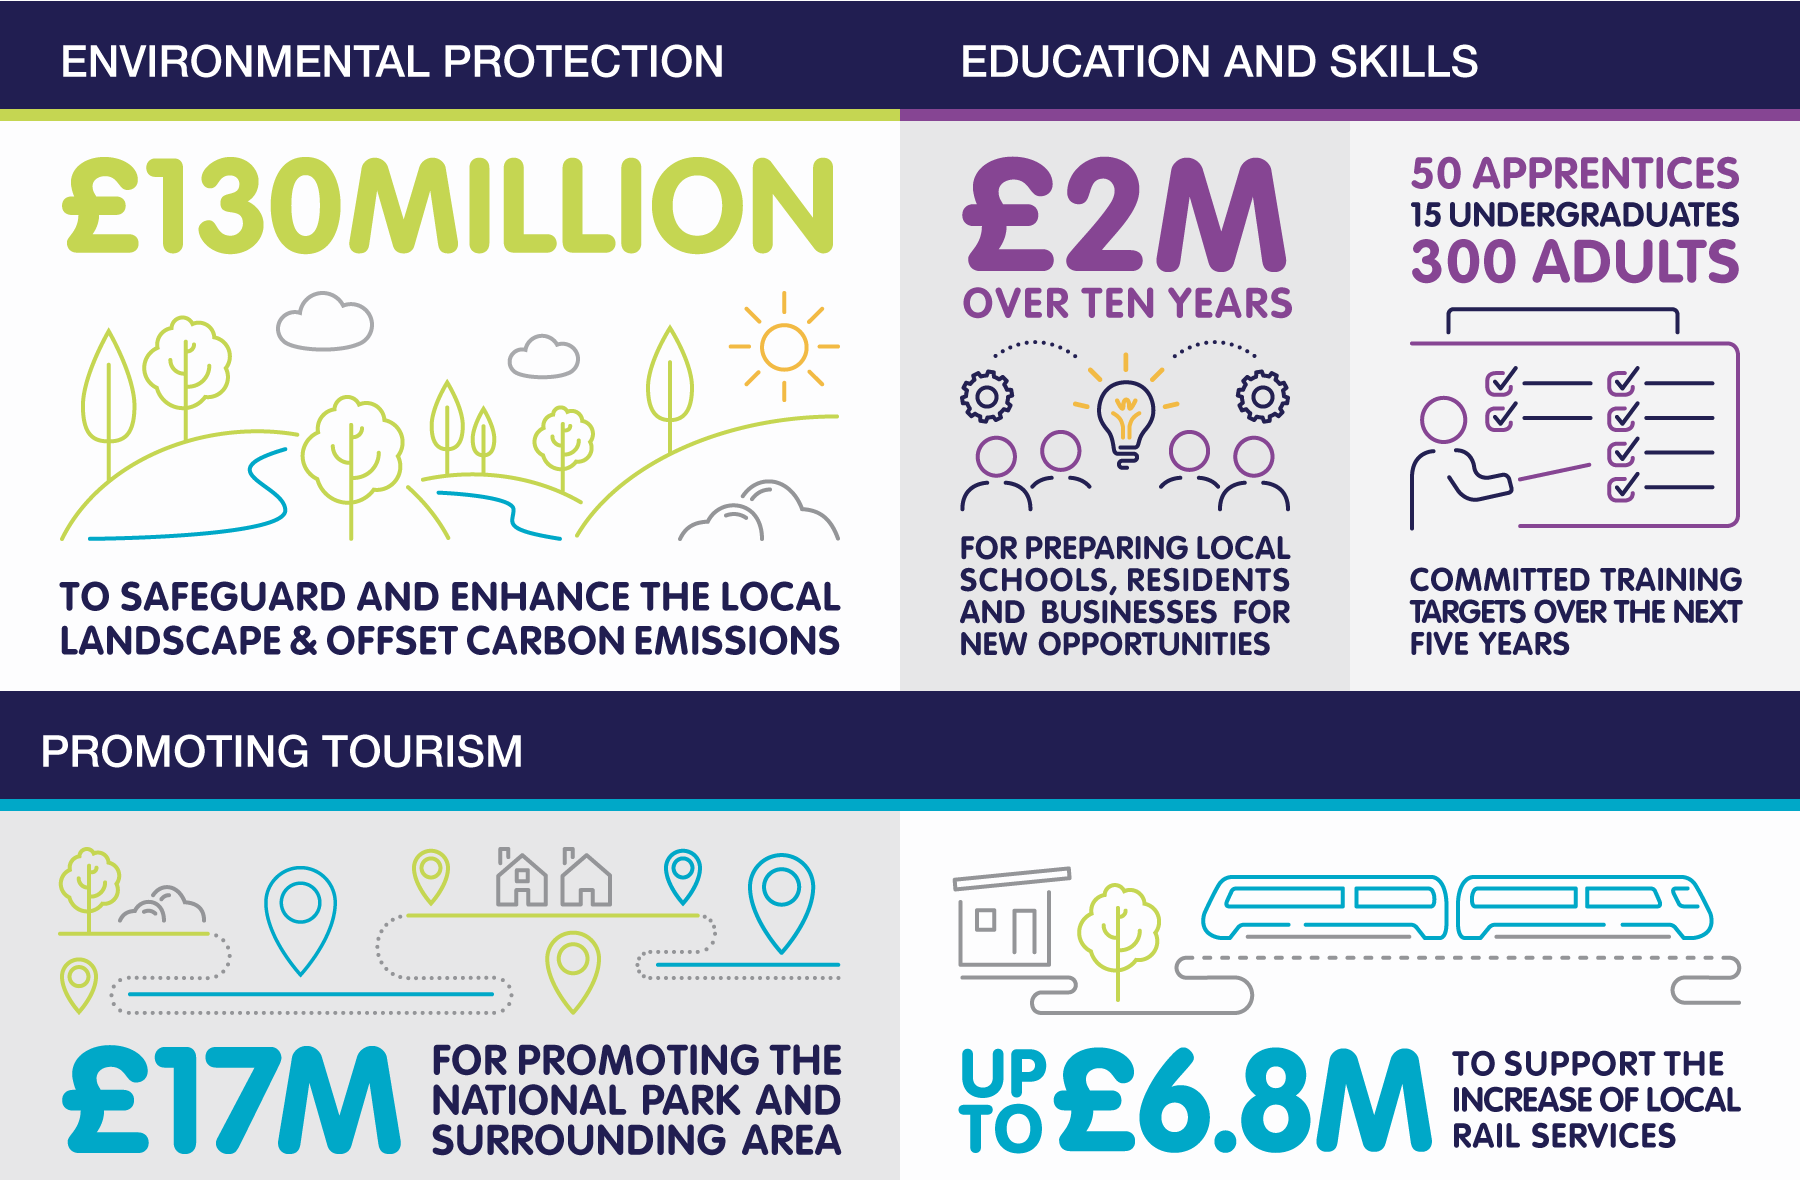 Environmental, tourism and education benefits